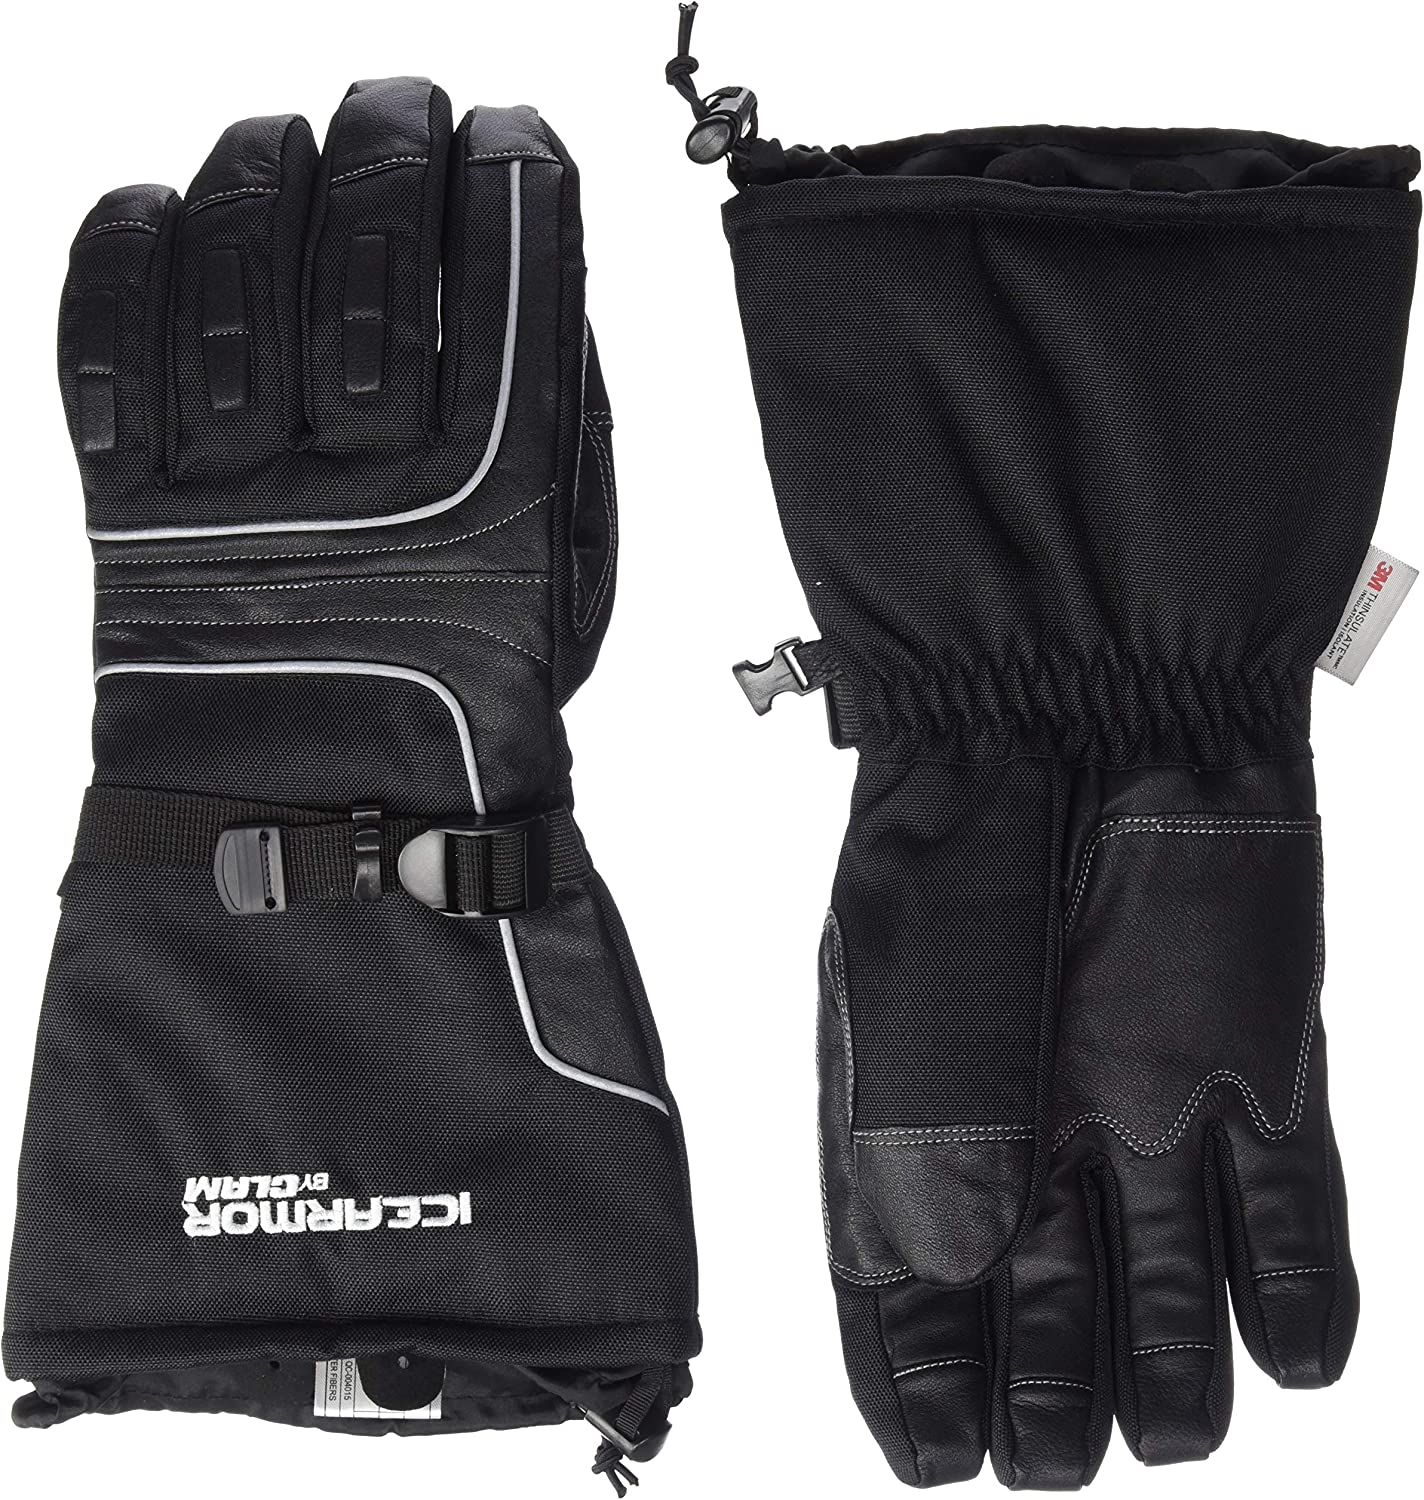 Renegade Many popular Max 47% OFF brands Glove Lg -